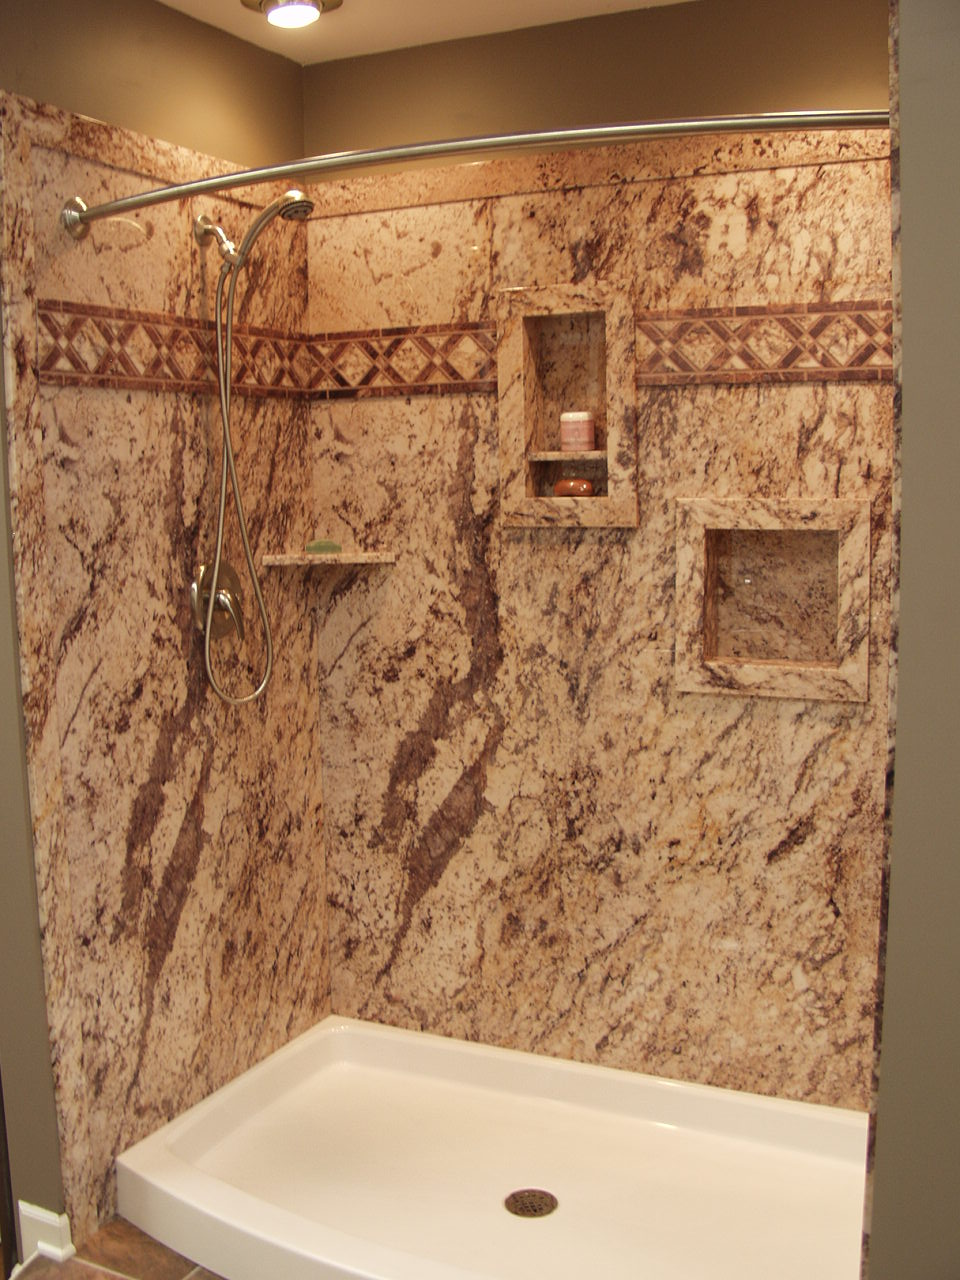 Tile Look Shower Surround.Are Shower Wall Panels Cheaper Than Tile 7 Factors You Need